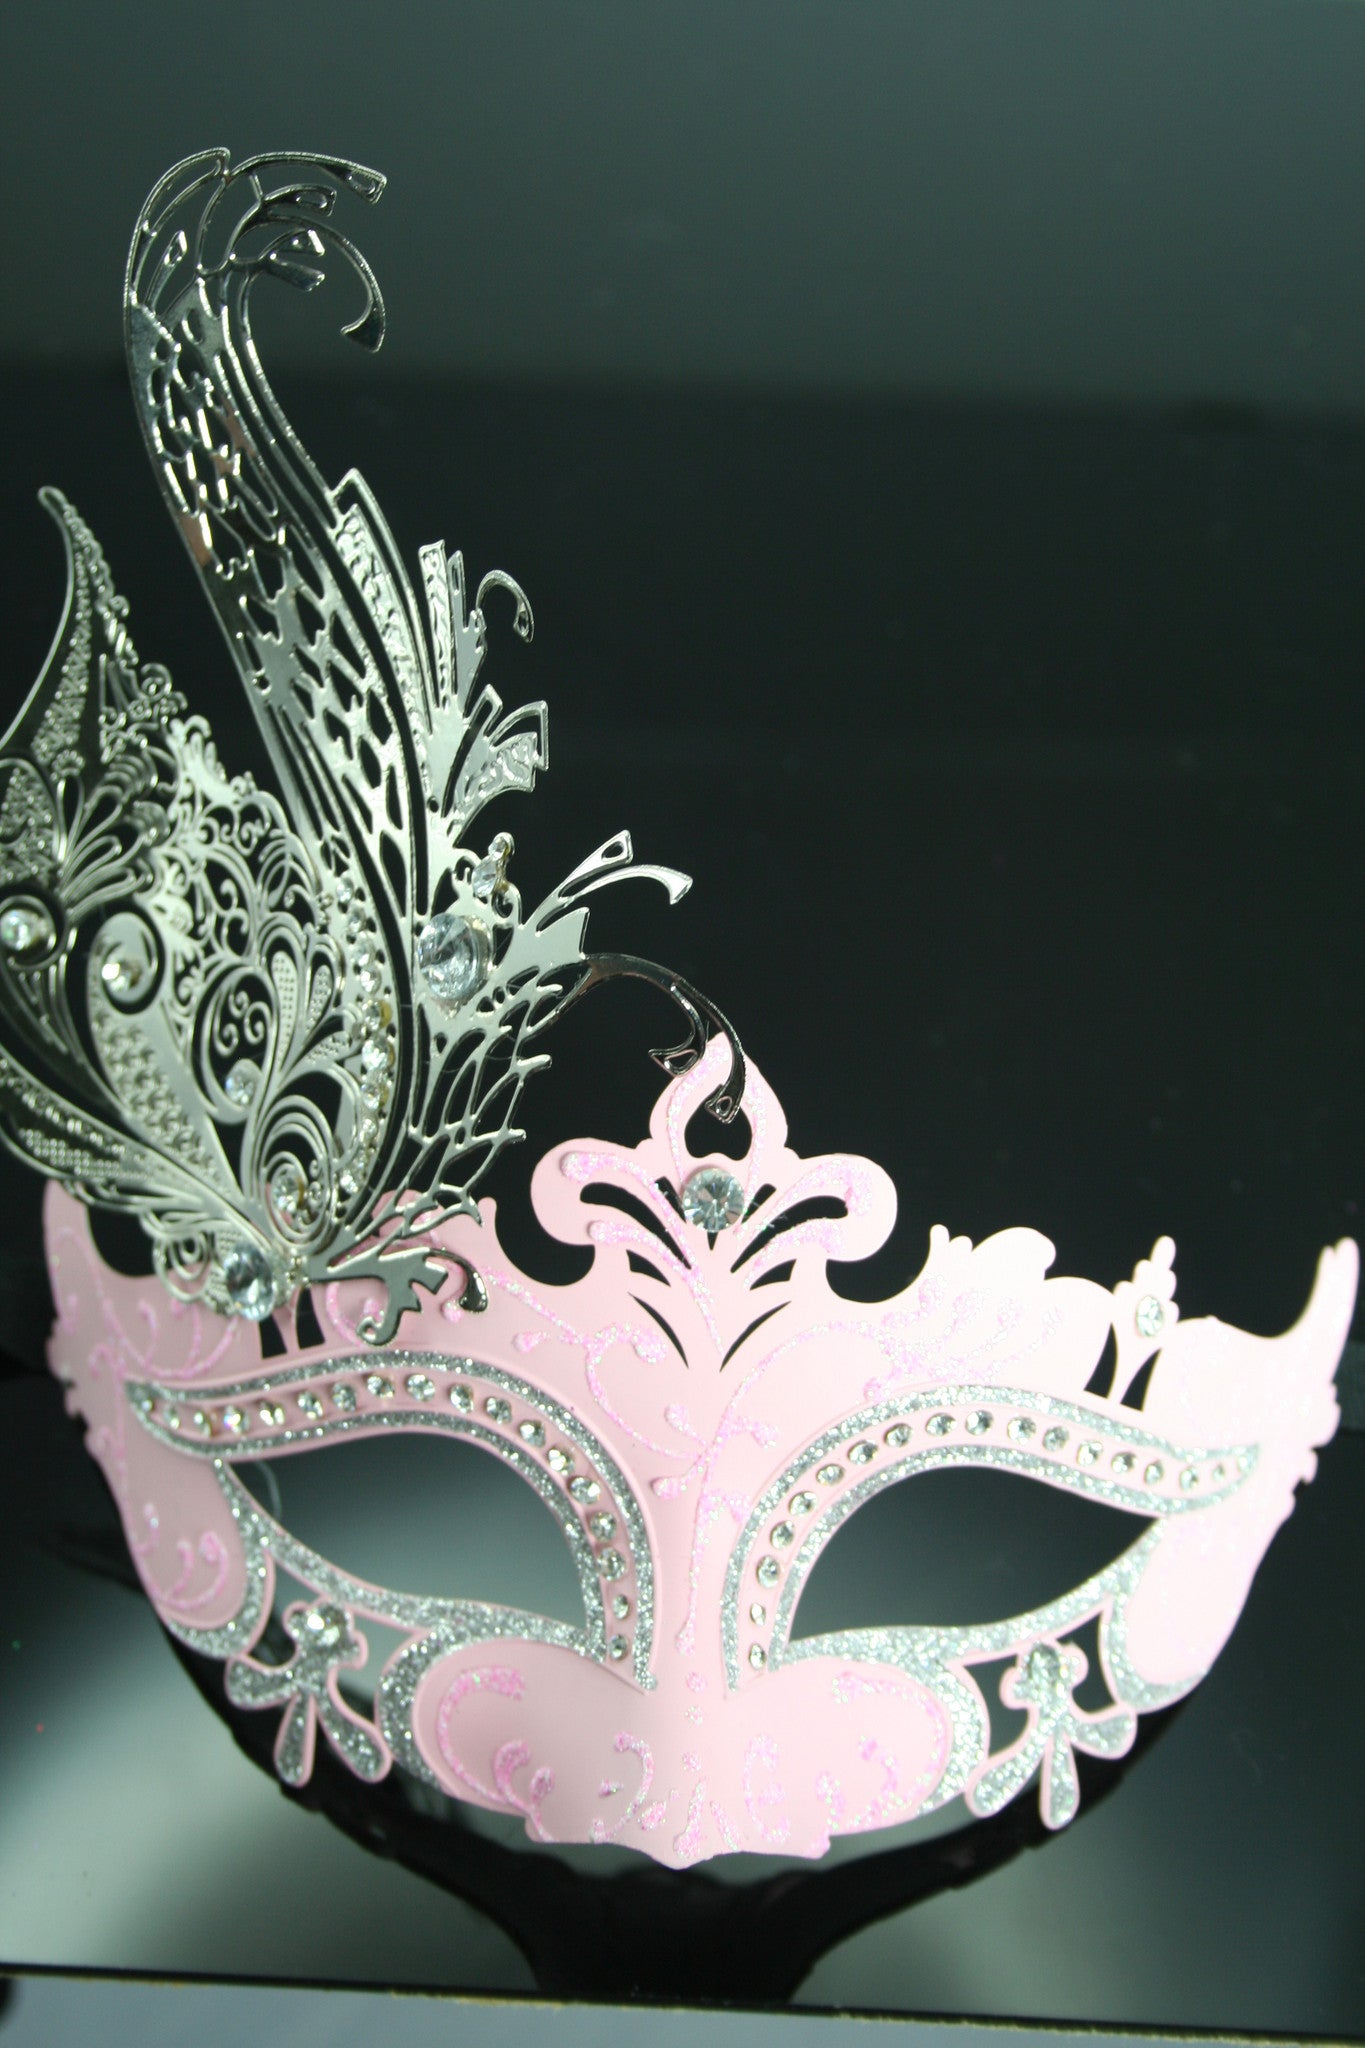 MK62 - Pink Mask with Diamantes and Metal Design -  CLEARANCE 50% OFF LISTED PRICE